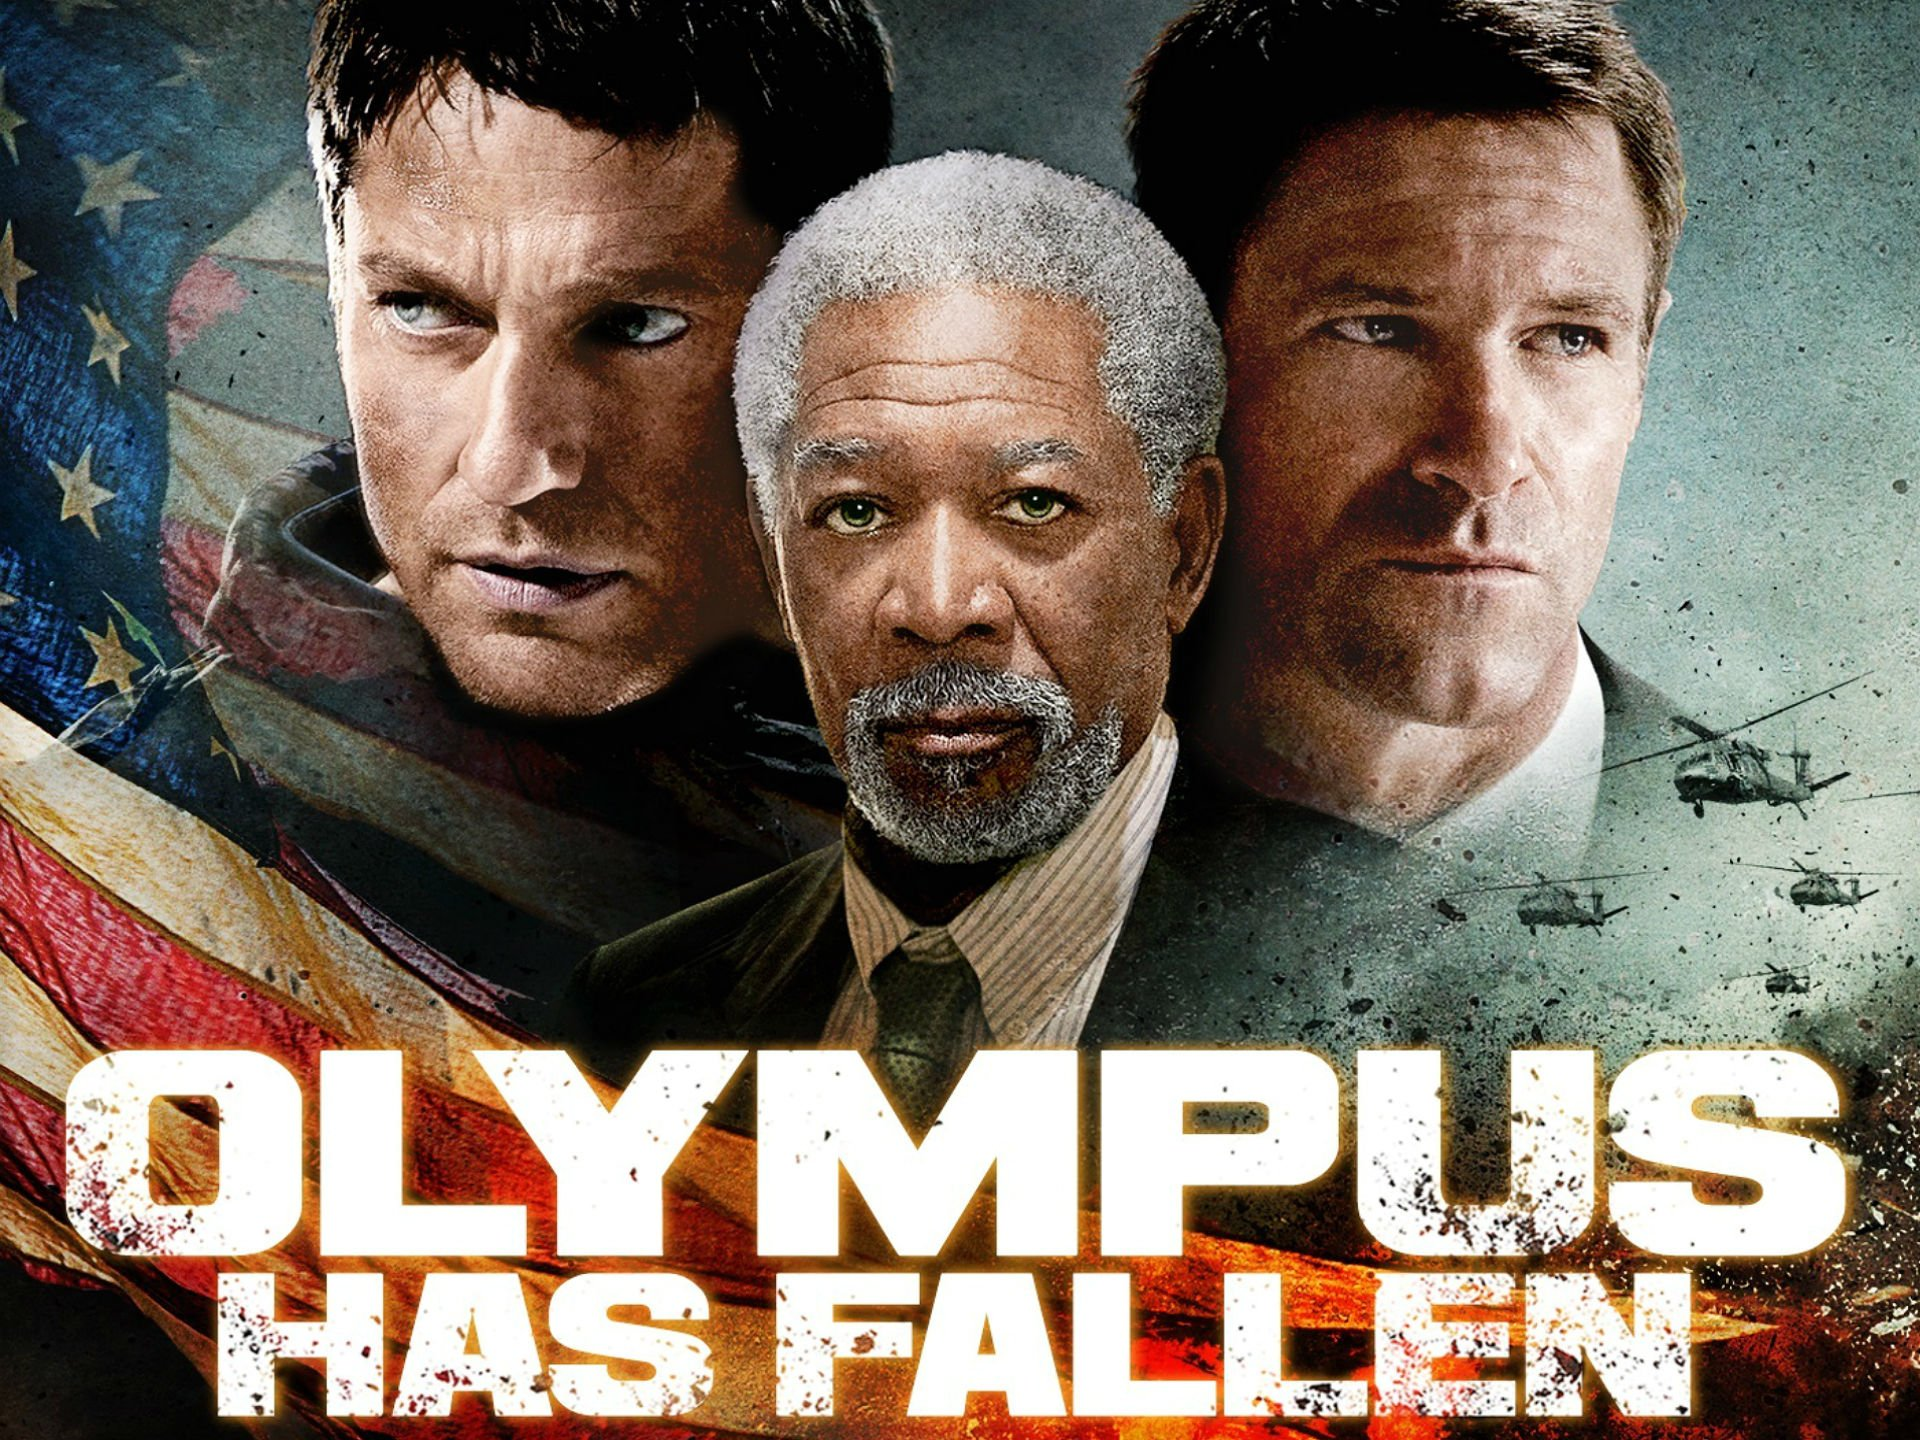 Olympus Has Fallen Crime Action Thriller Police 1ohf Poster Fire Flames Wallpaper 1920x1440 728275 Wallpaperup